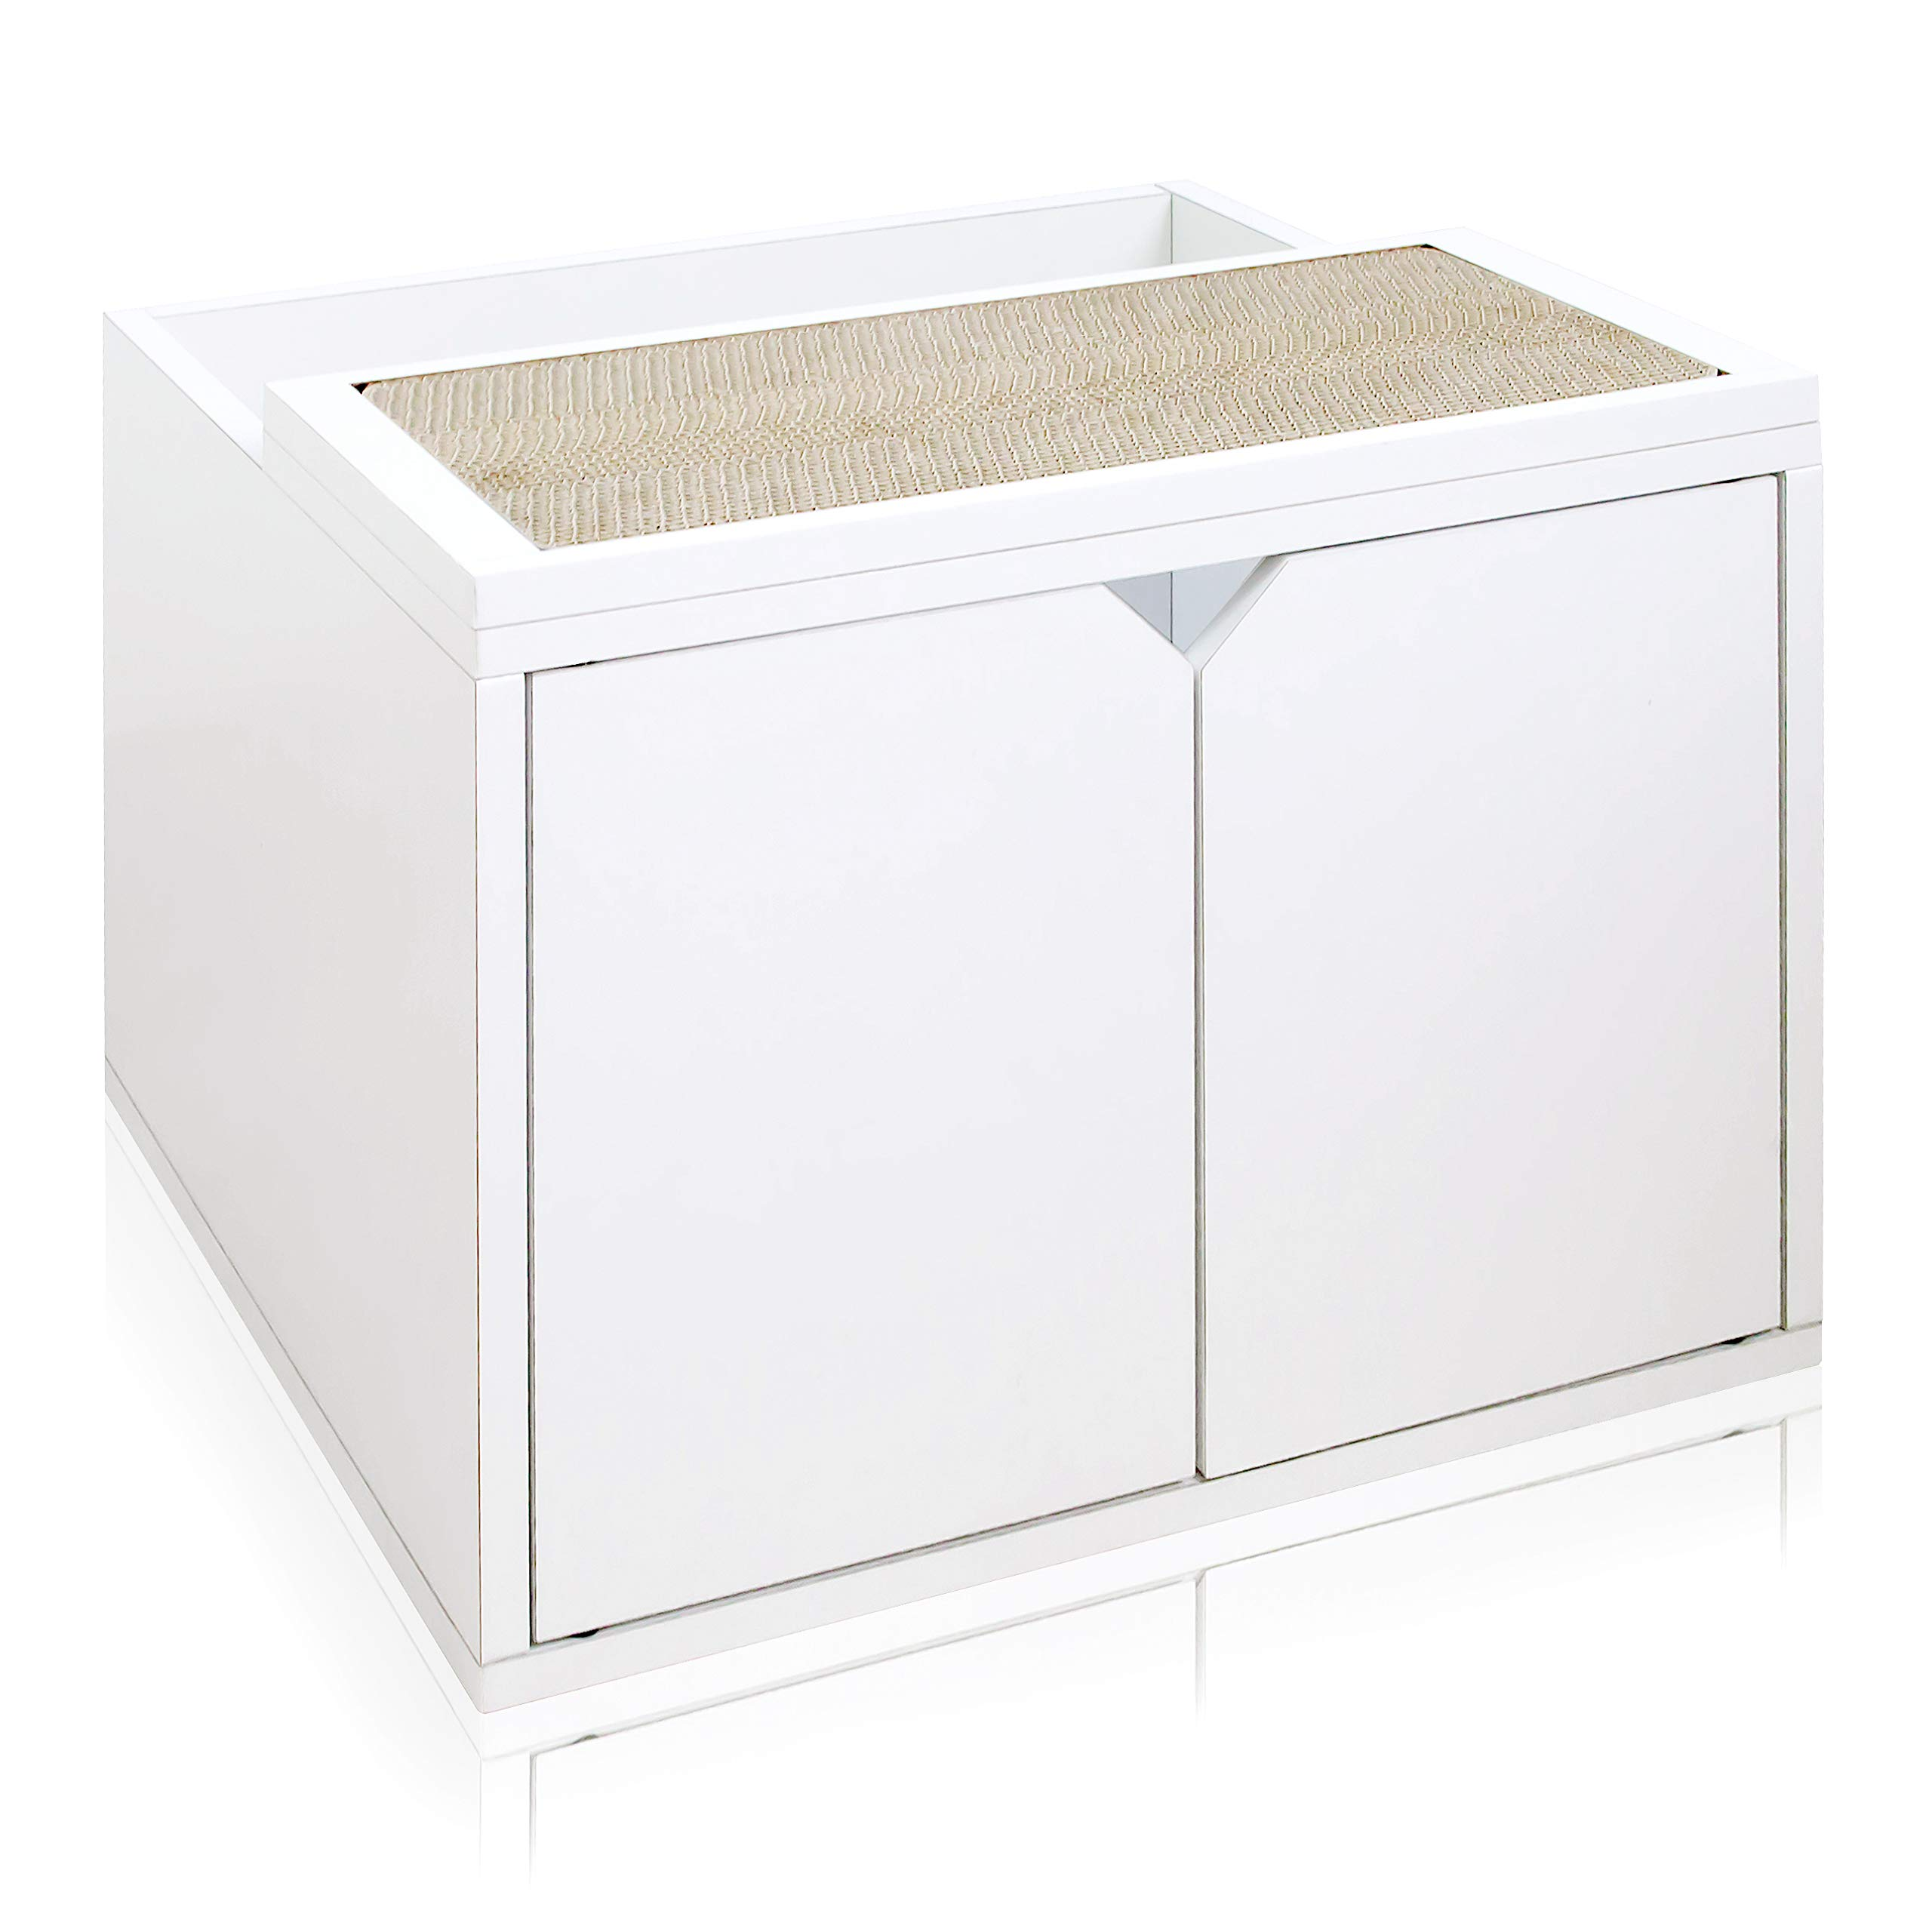 Way Basics Eco Friendly Modern Cat Litter Box Enclosure with Doors, White (Tool-Free Assembly & Uniquely Crafted from Sustainable Non Toxic Zboard Paperboard) by Way Basics